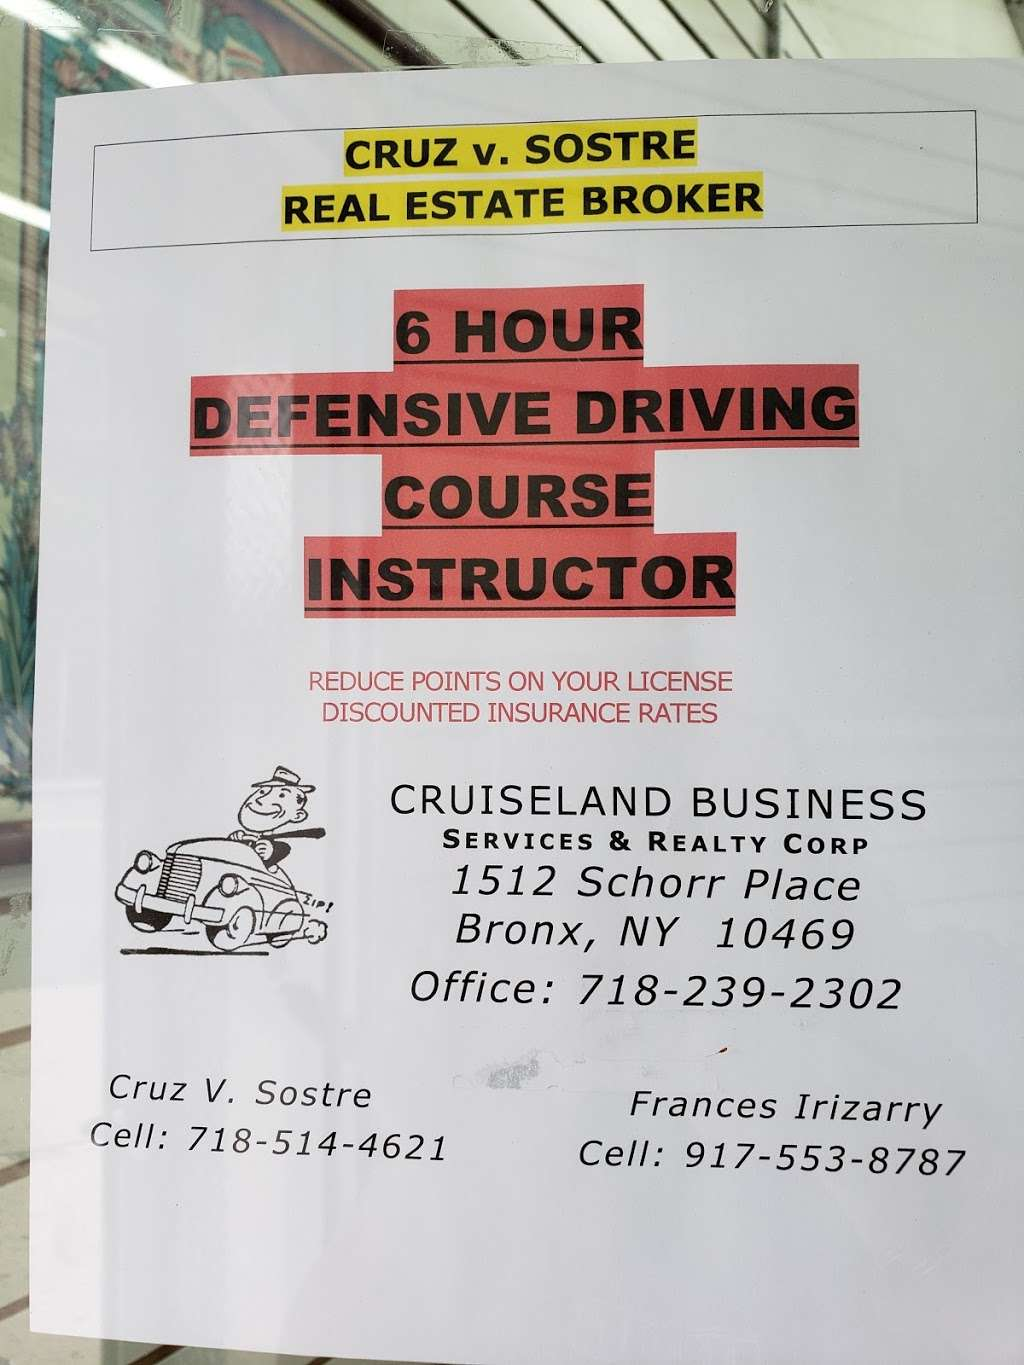 Cruiseland Business Services & Realty Corp. - real estate agency  | Photo 3 of 3 | Address: Eastchester Rd & Schorr Pl, Bronx, NY 10469, USA | Phone: (718) 239-2302